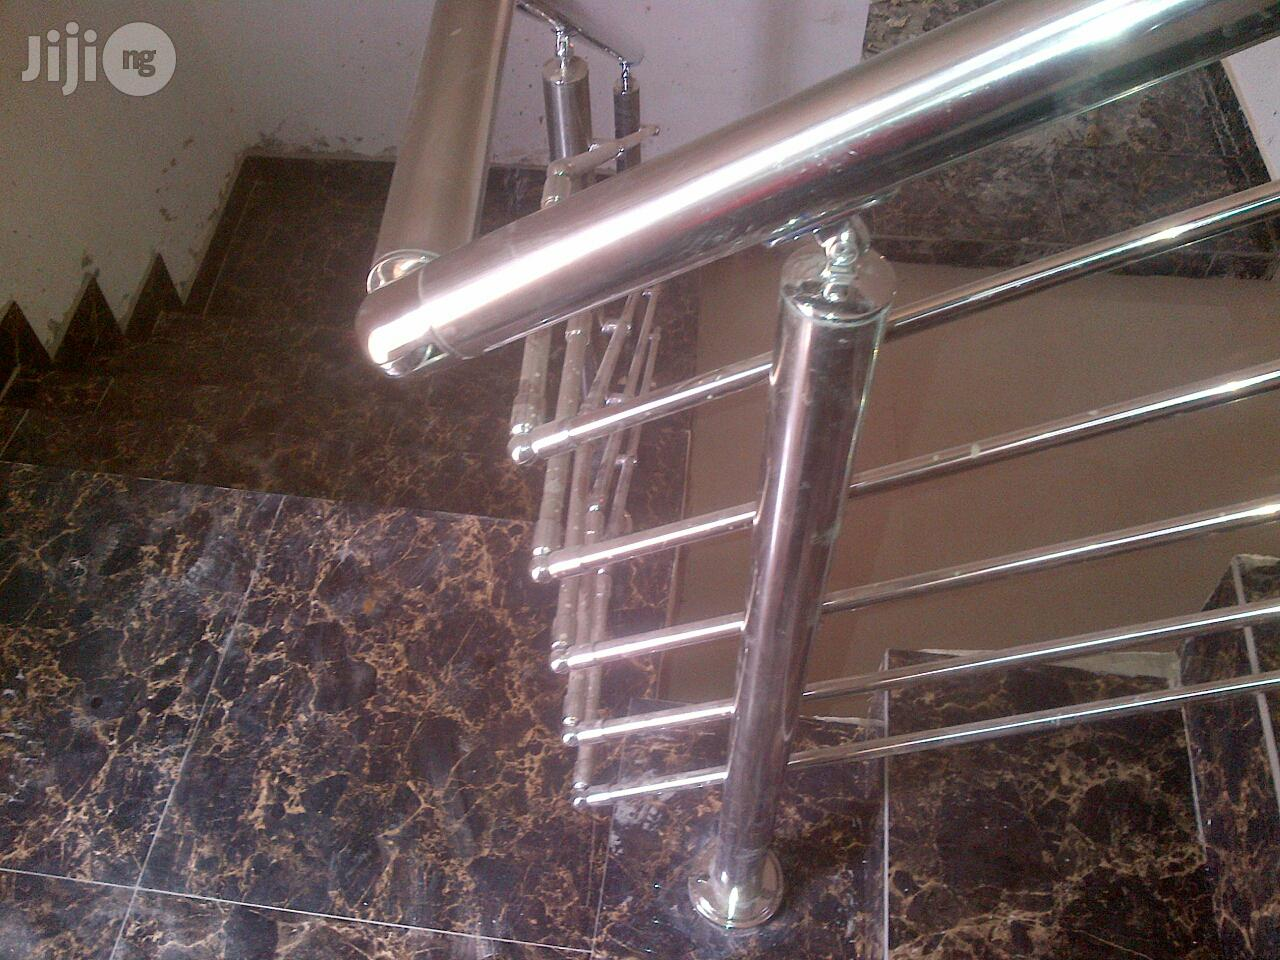 Stainless Steel Handrails | Building Materials for sale in Lugbe District, Abuja (FCT) State, Nigeria